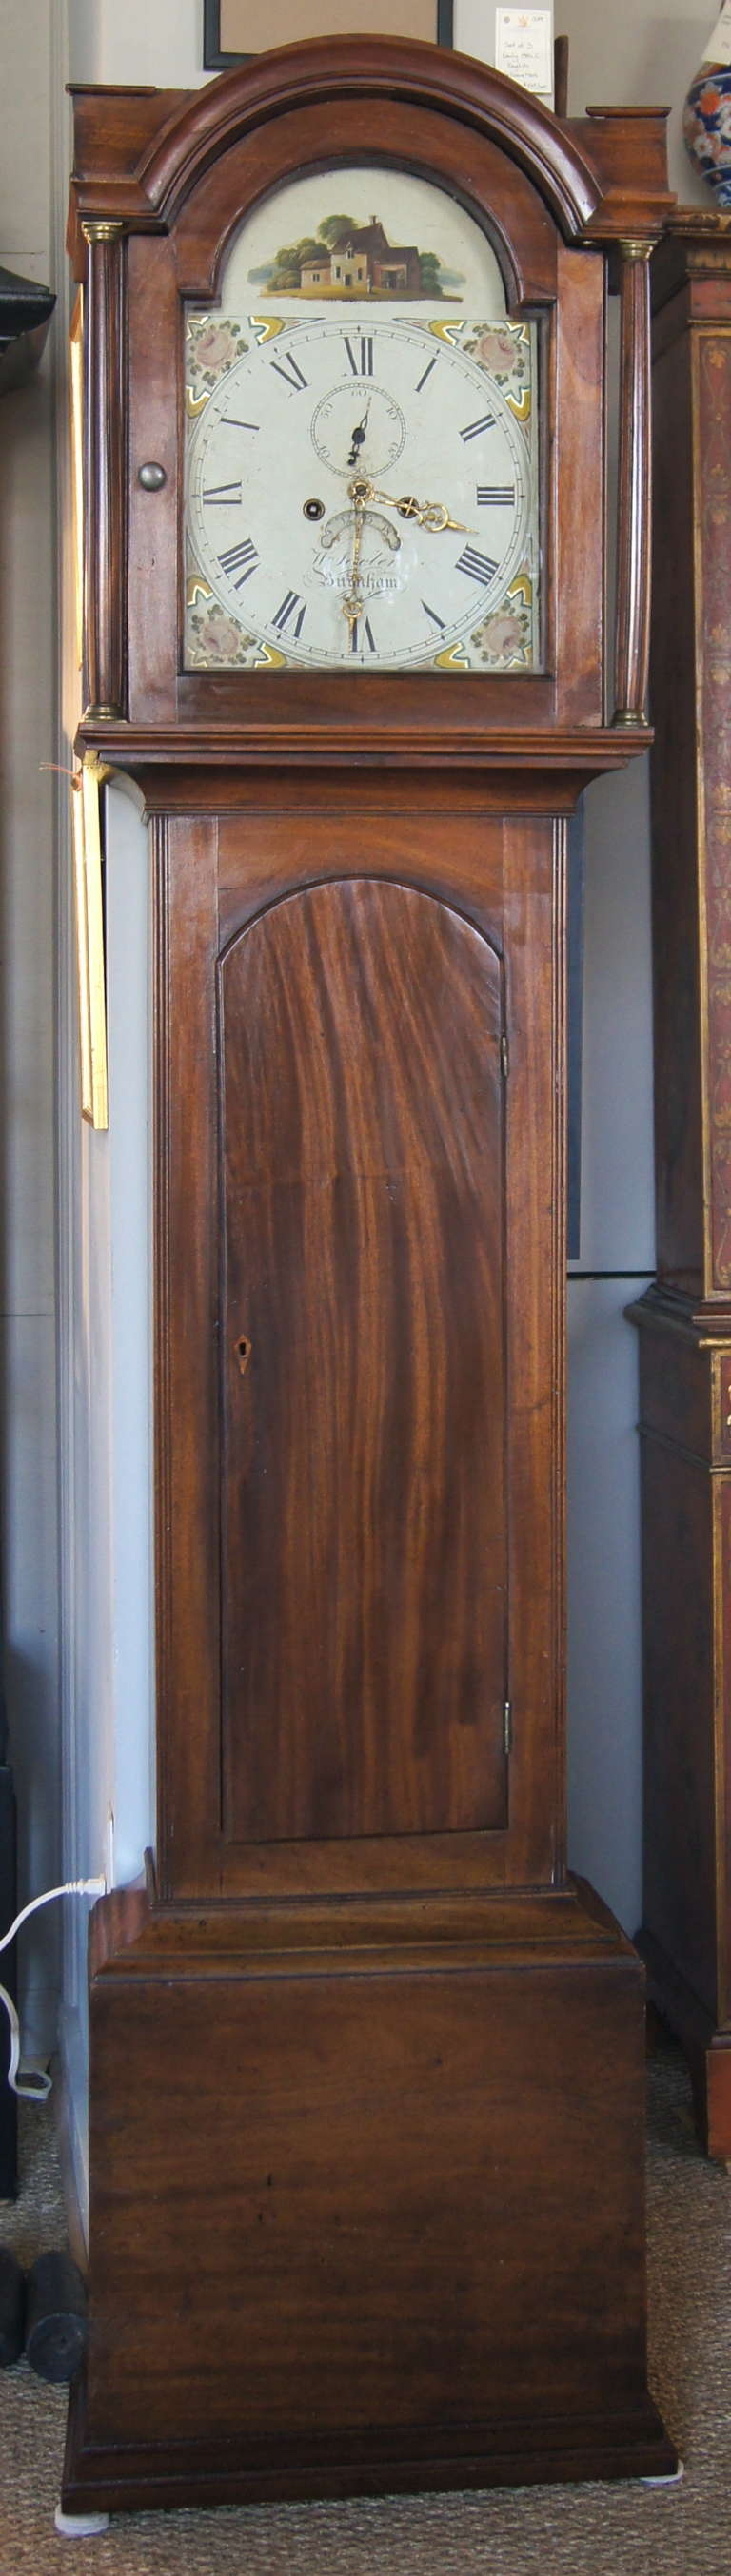 Early 19th Century English Tall Case Clock 4